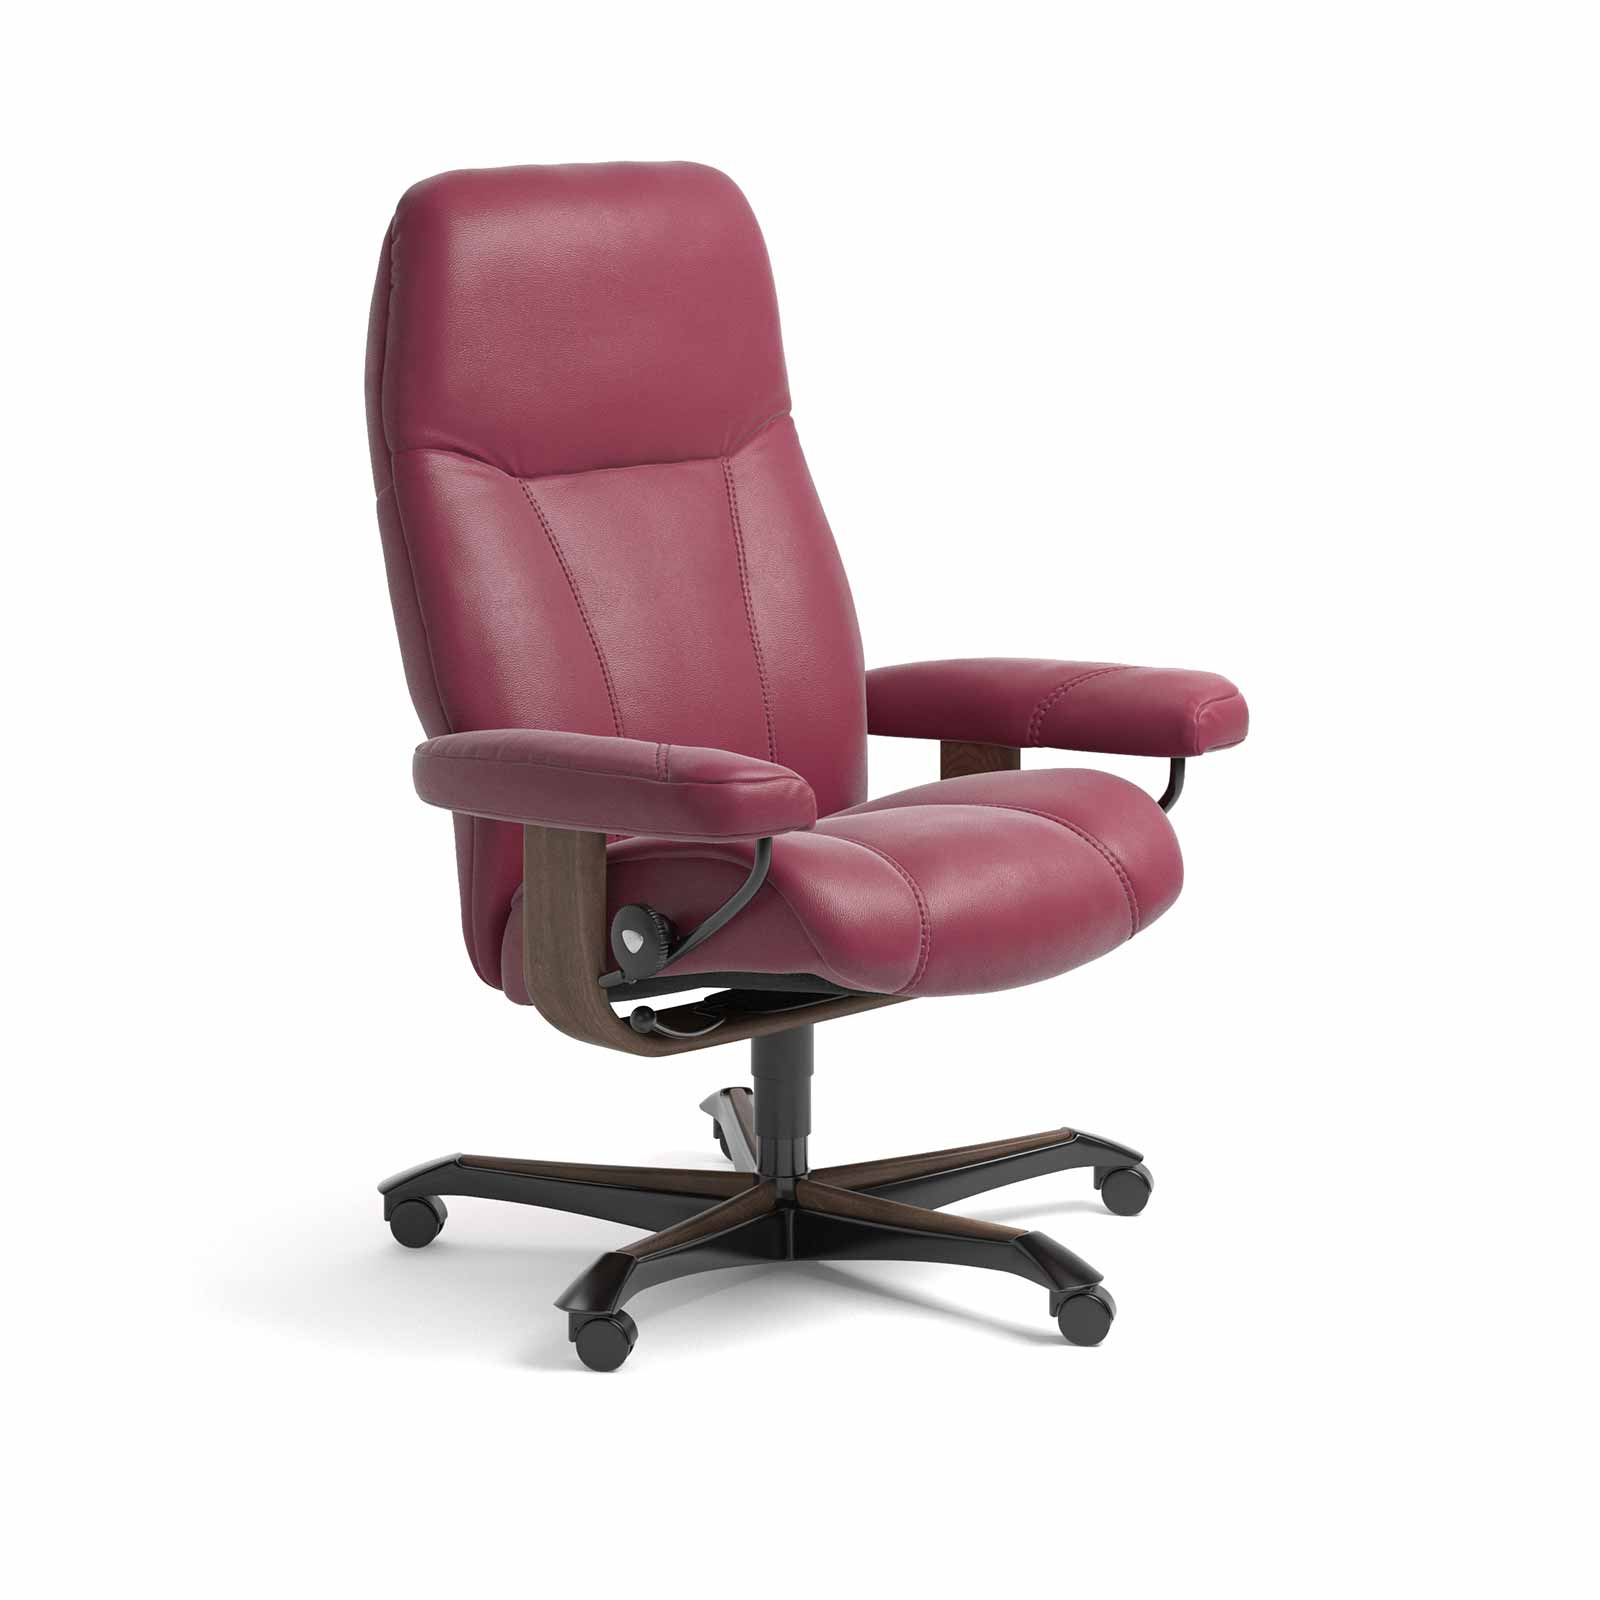 Stressless Bürostuhl Stressless Sessel Consul Home Office Paloma Beet Red Büro